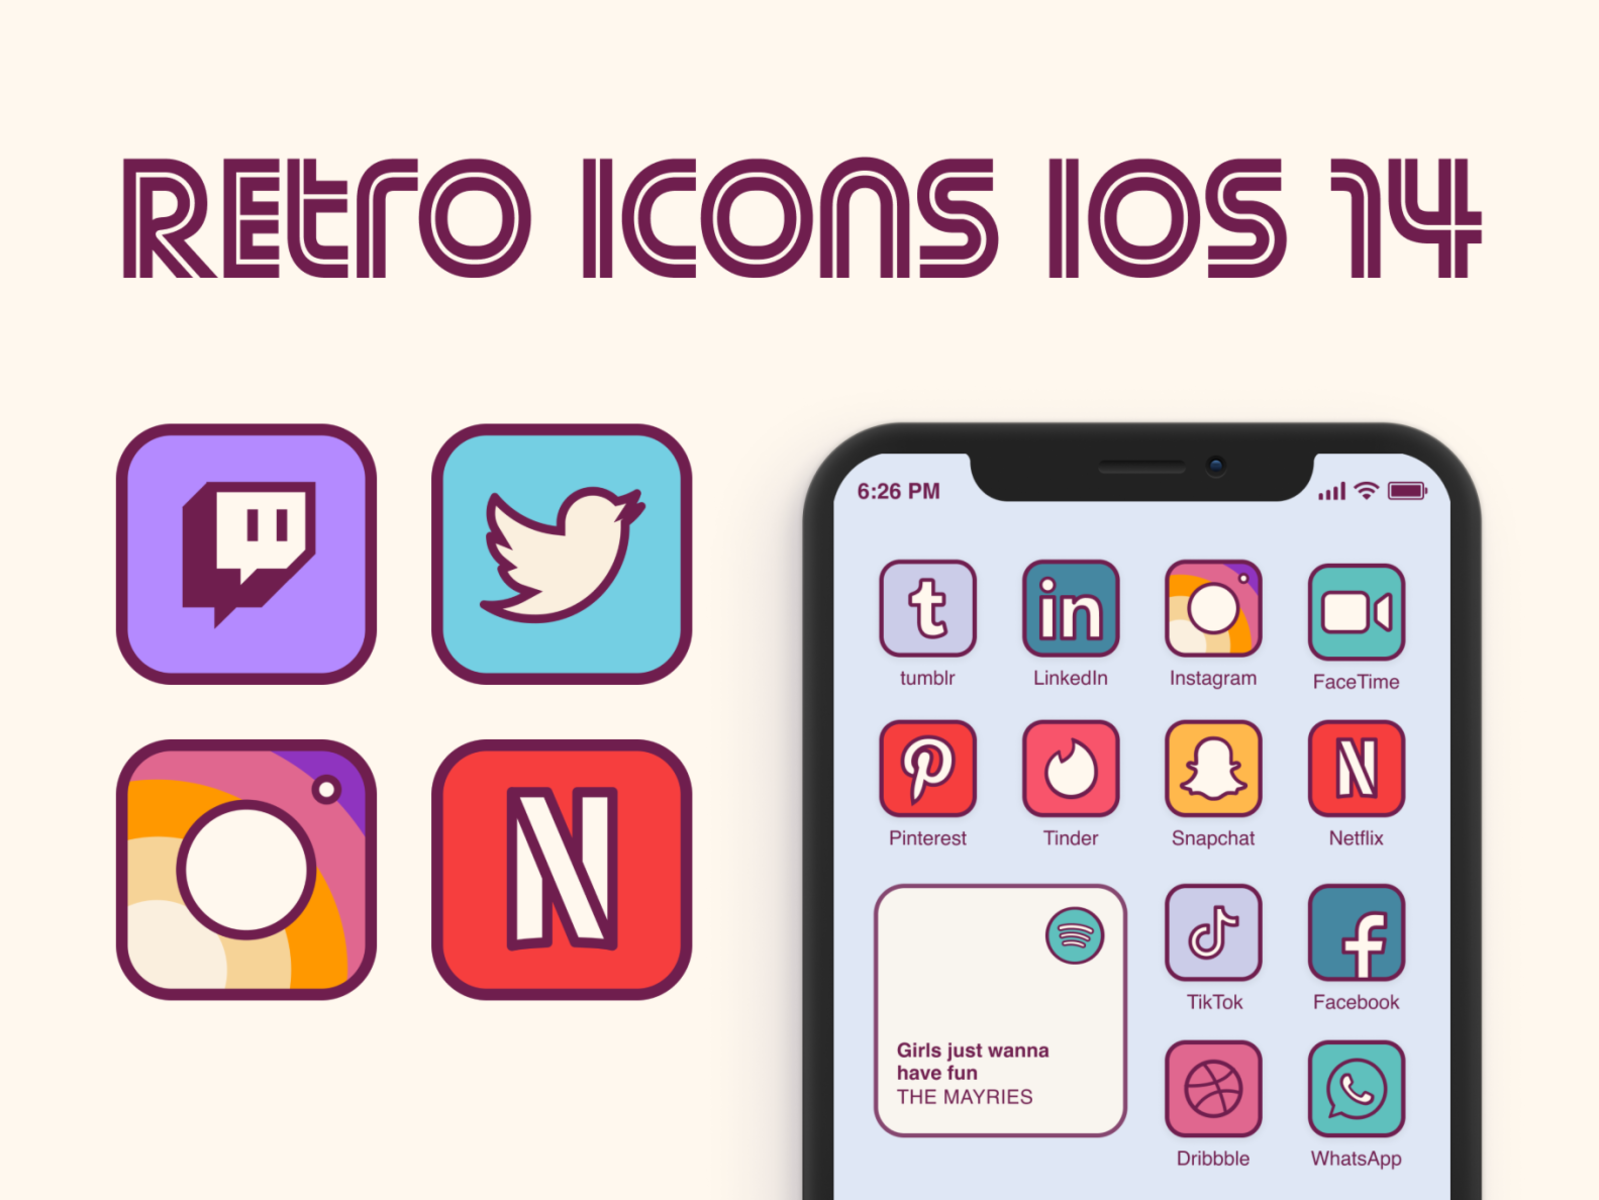 Customize Your Ios 14 Home Screen With These Trendy Icon Sets Dribbble Design Blog